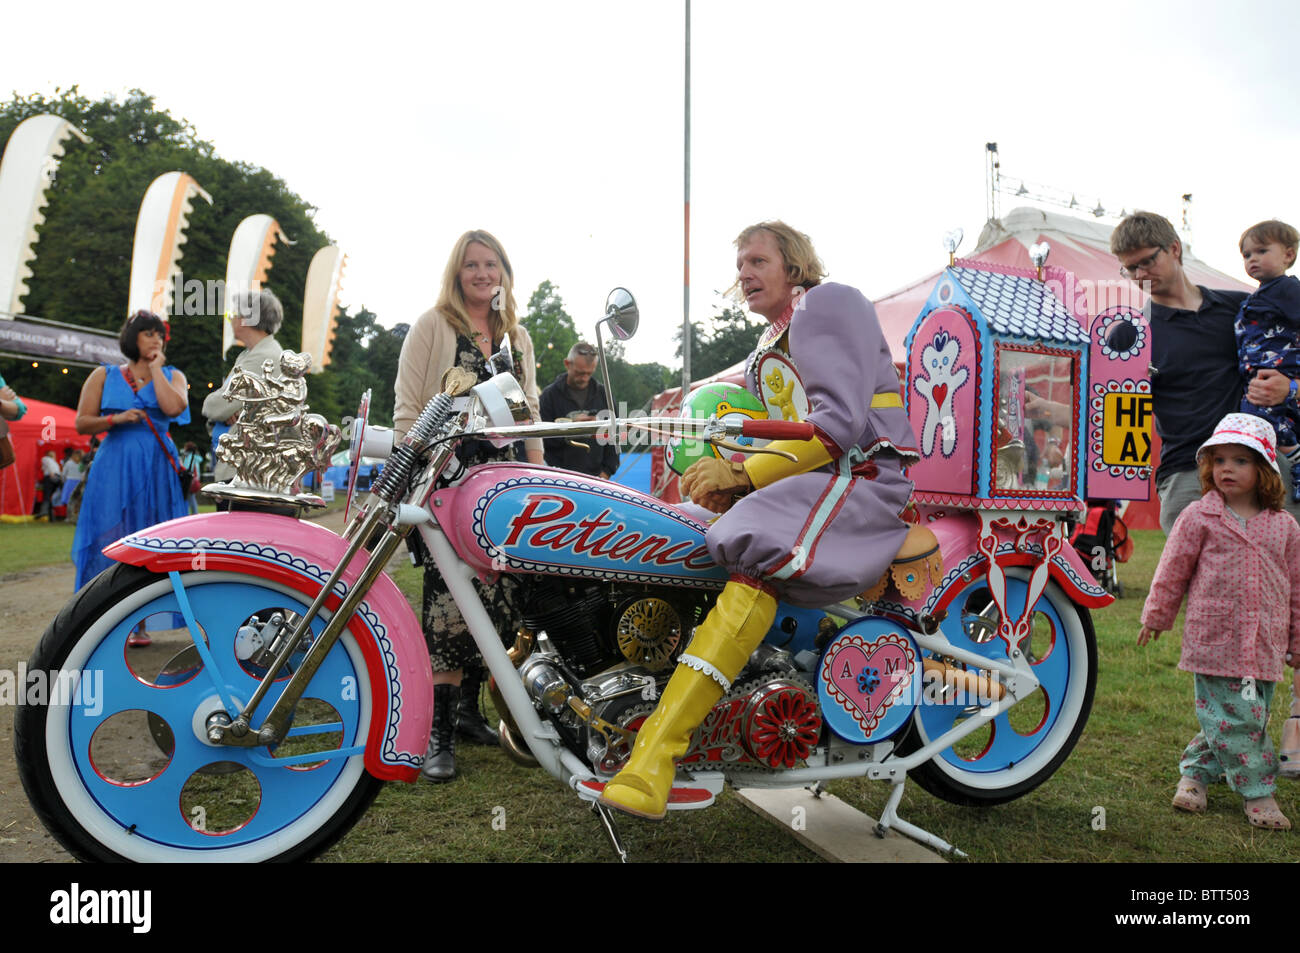 Grayson Perry and Lady St Germans with motorcycle at the Port Eliot literary festival 2010 - Stock Image